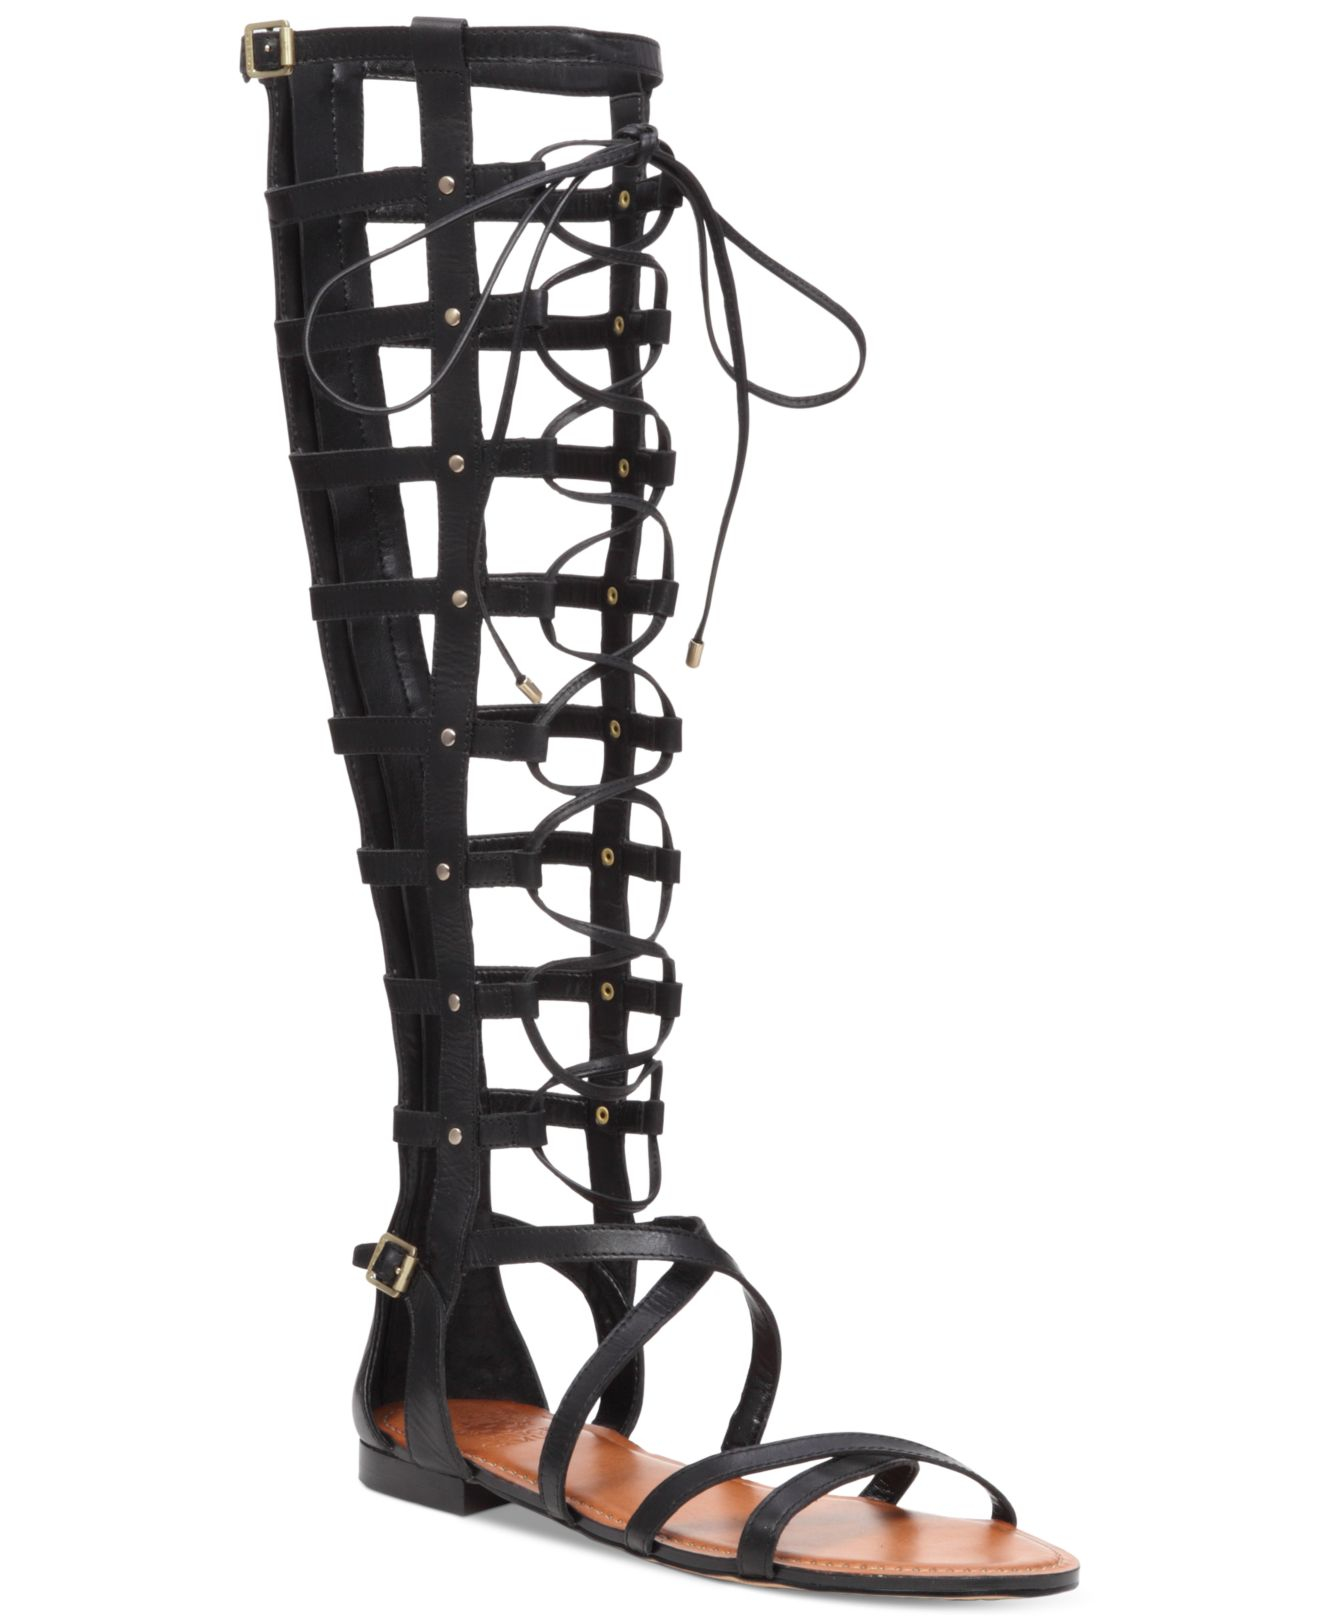 Vince Camuto Mesta Gladiator Sandals In Black Lyst